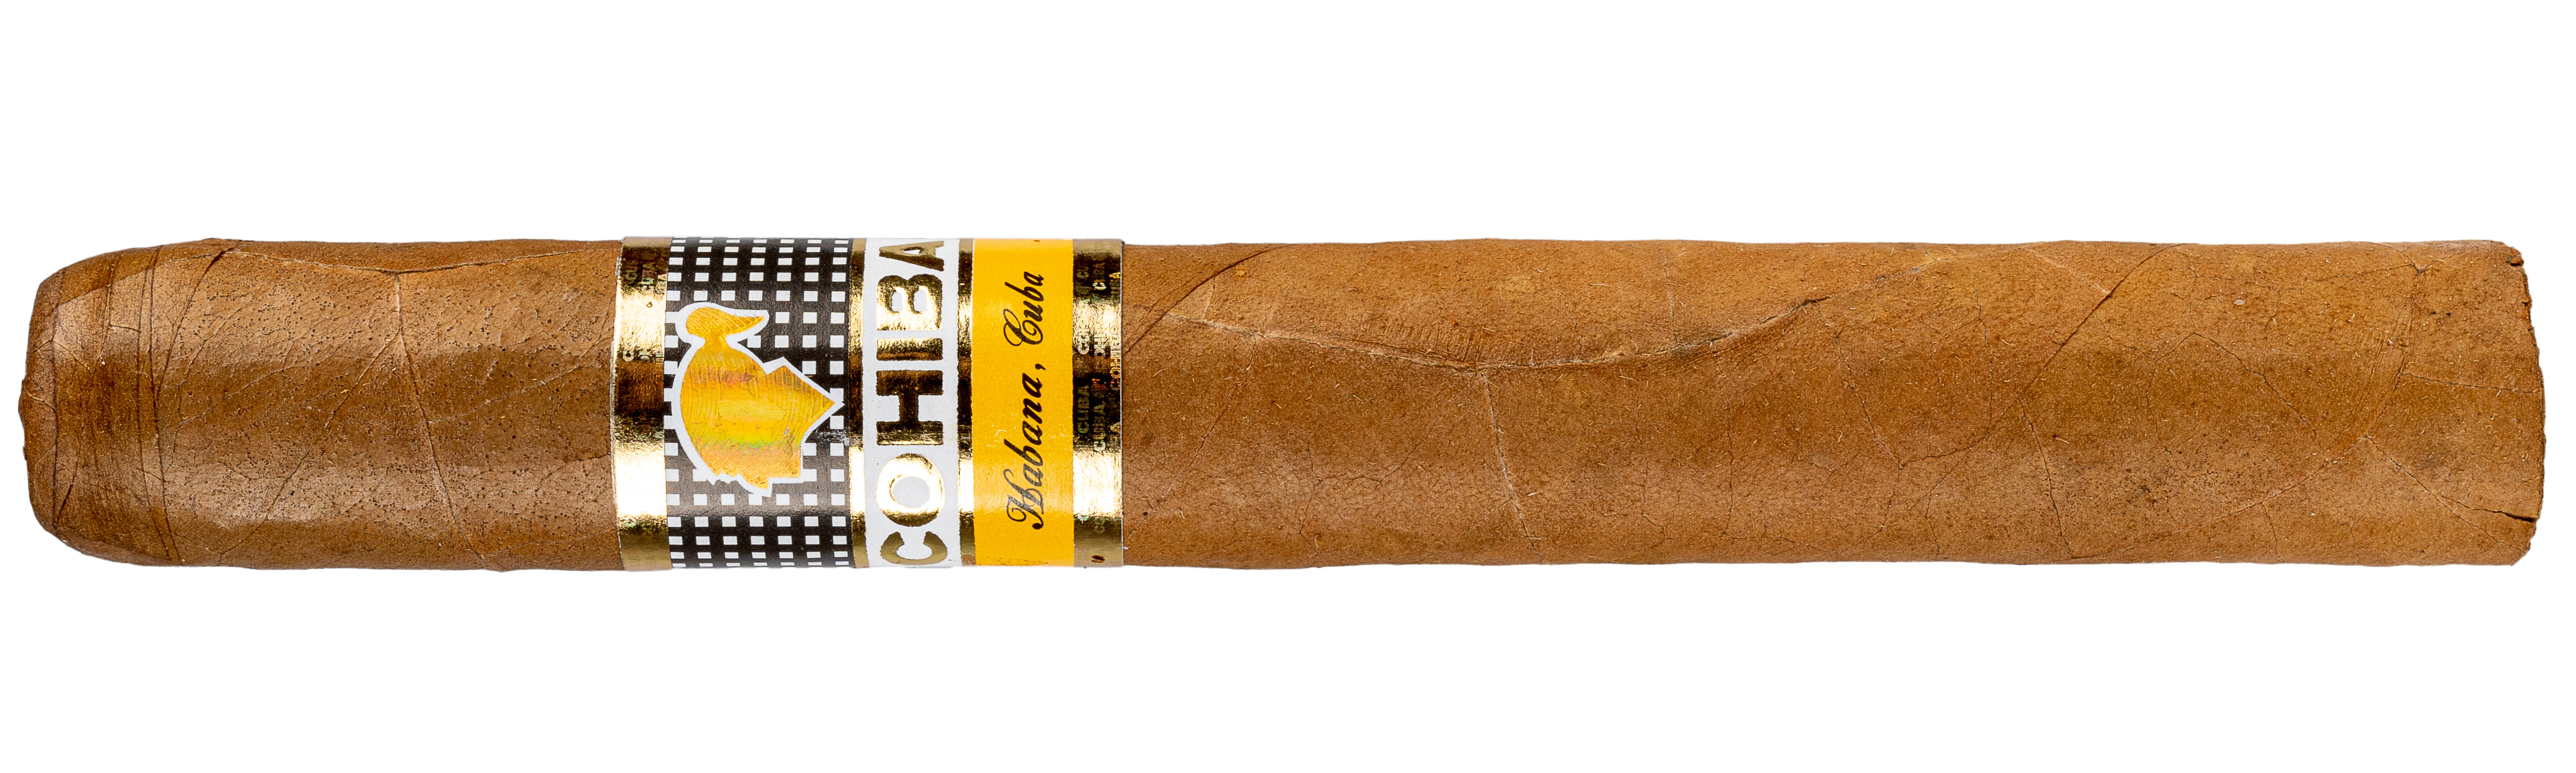 Blind Cigar Review: Cohiba | Siglo II